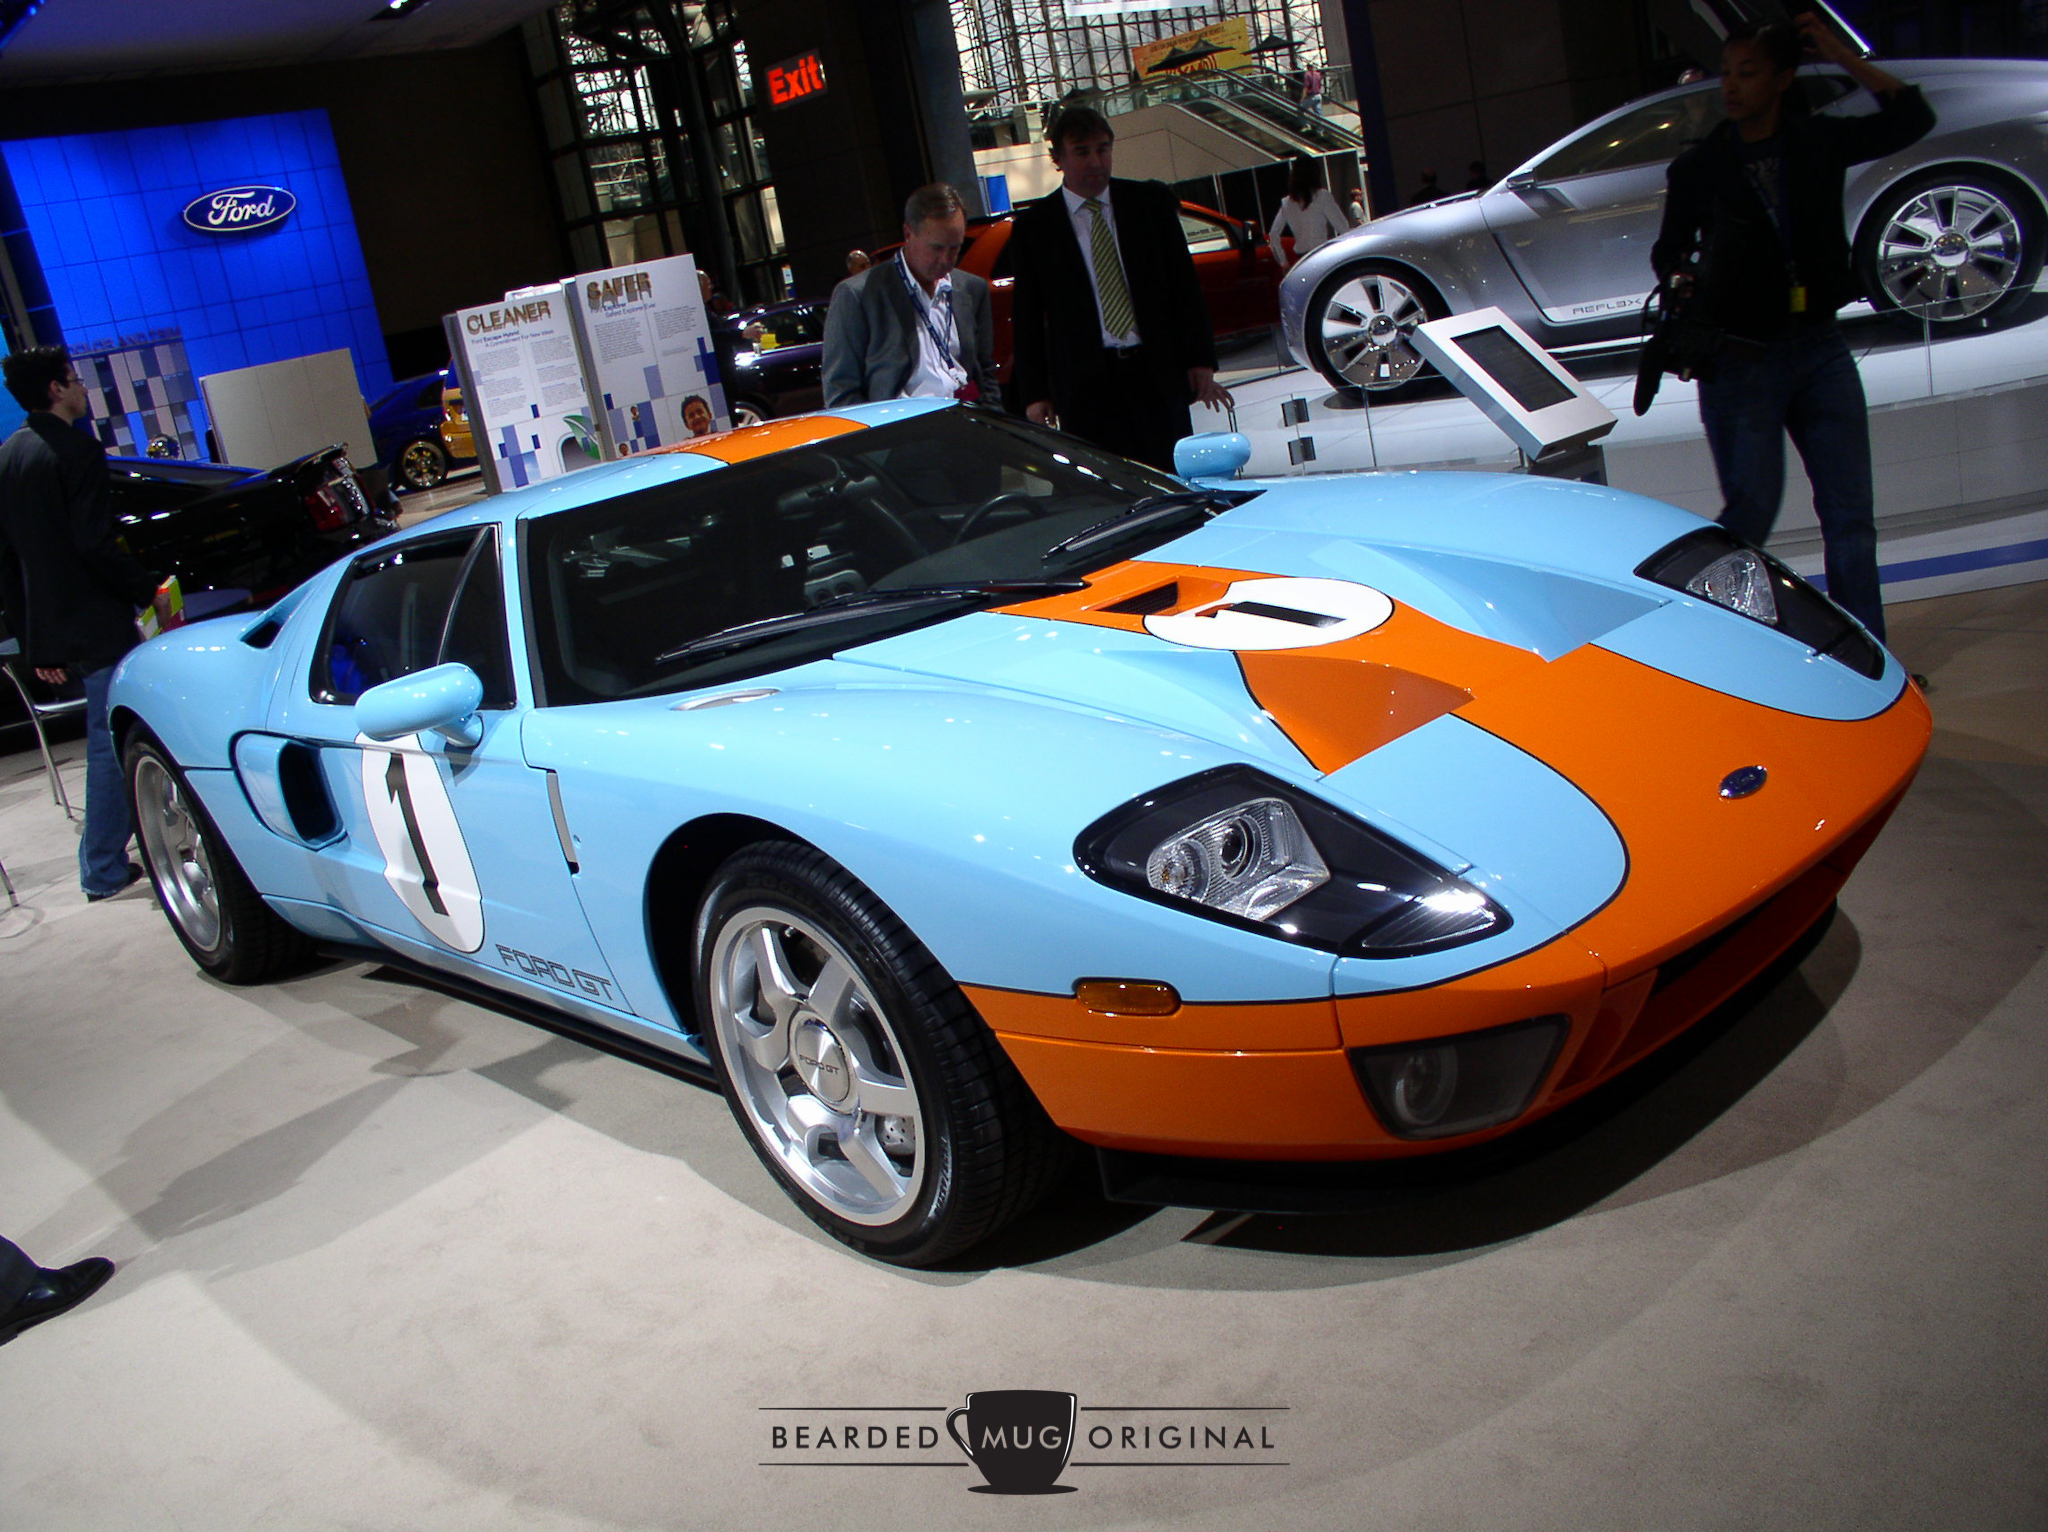 The new Ford GT looked stunning in the Gulf livery.